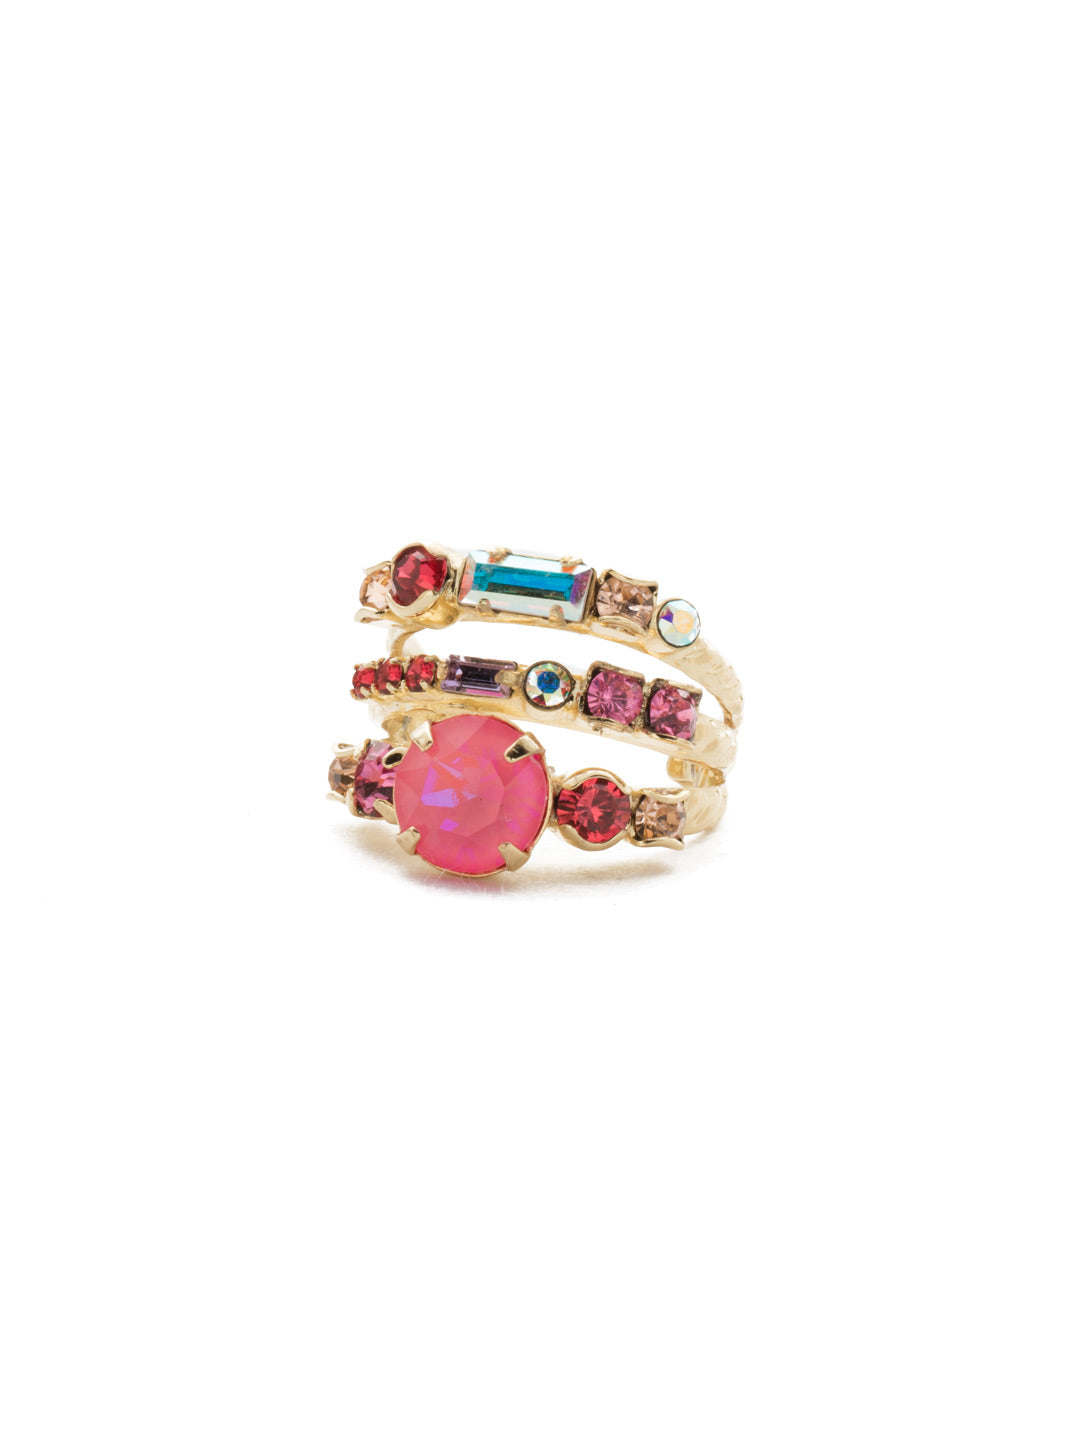 Triple Threat Stacked Ring - RDK23BGISS